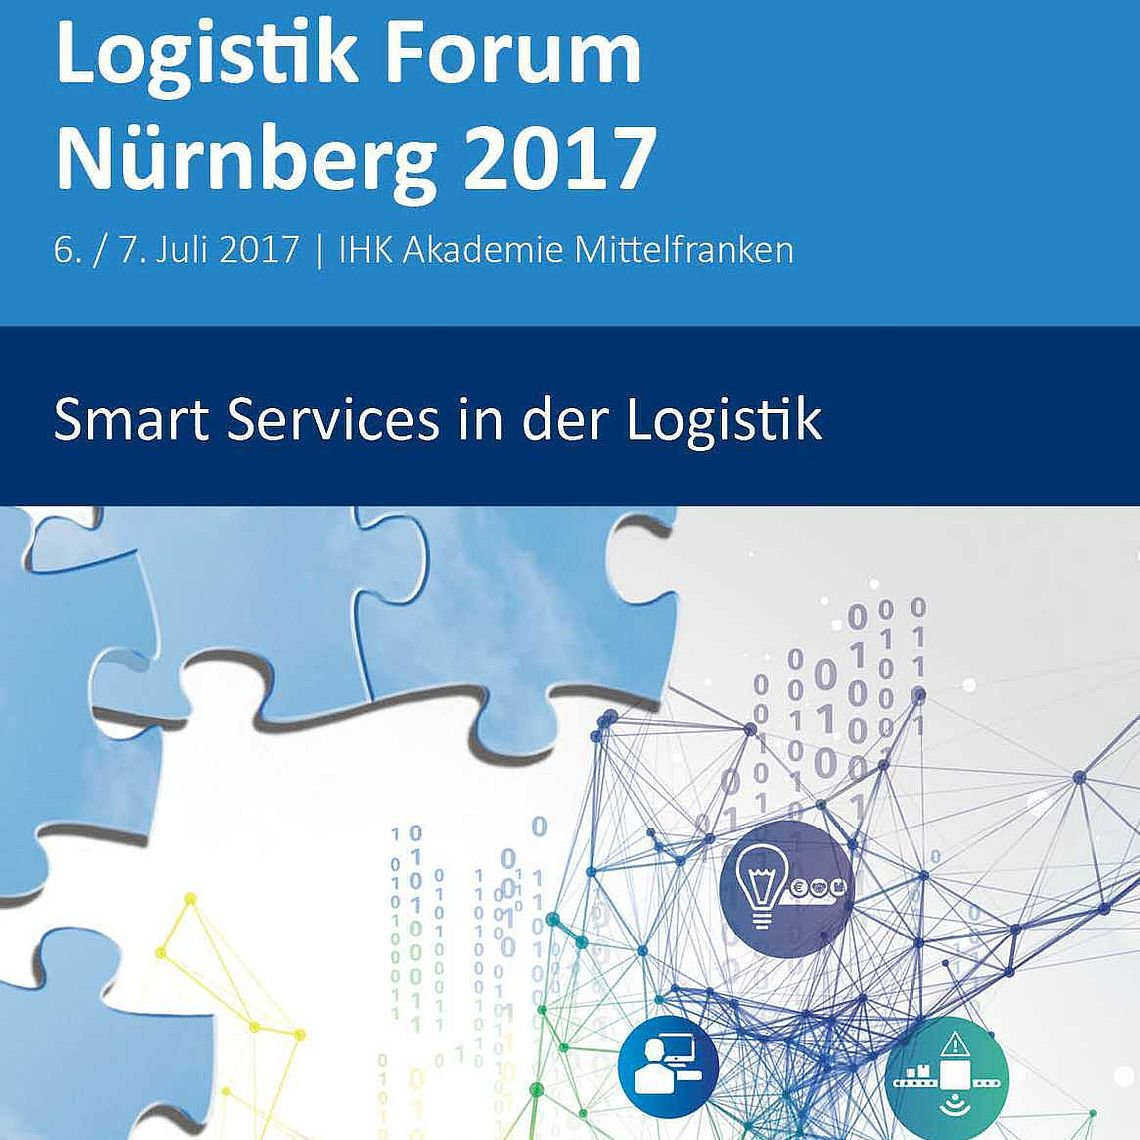 prof dr ing ralf bogdanski von der th n rnberg stellt pilotprojekt bei logistik forum. Black Bedroom Furniture Sets. Home Design Ideas